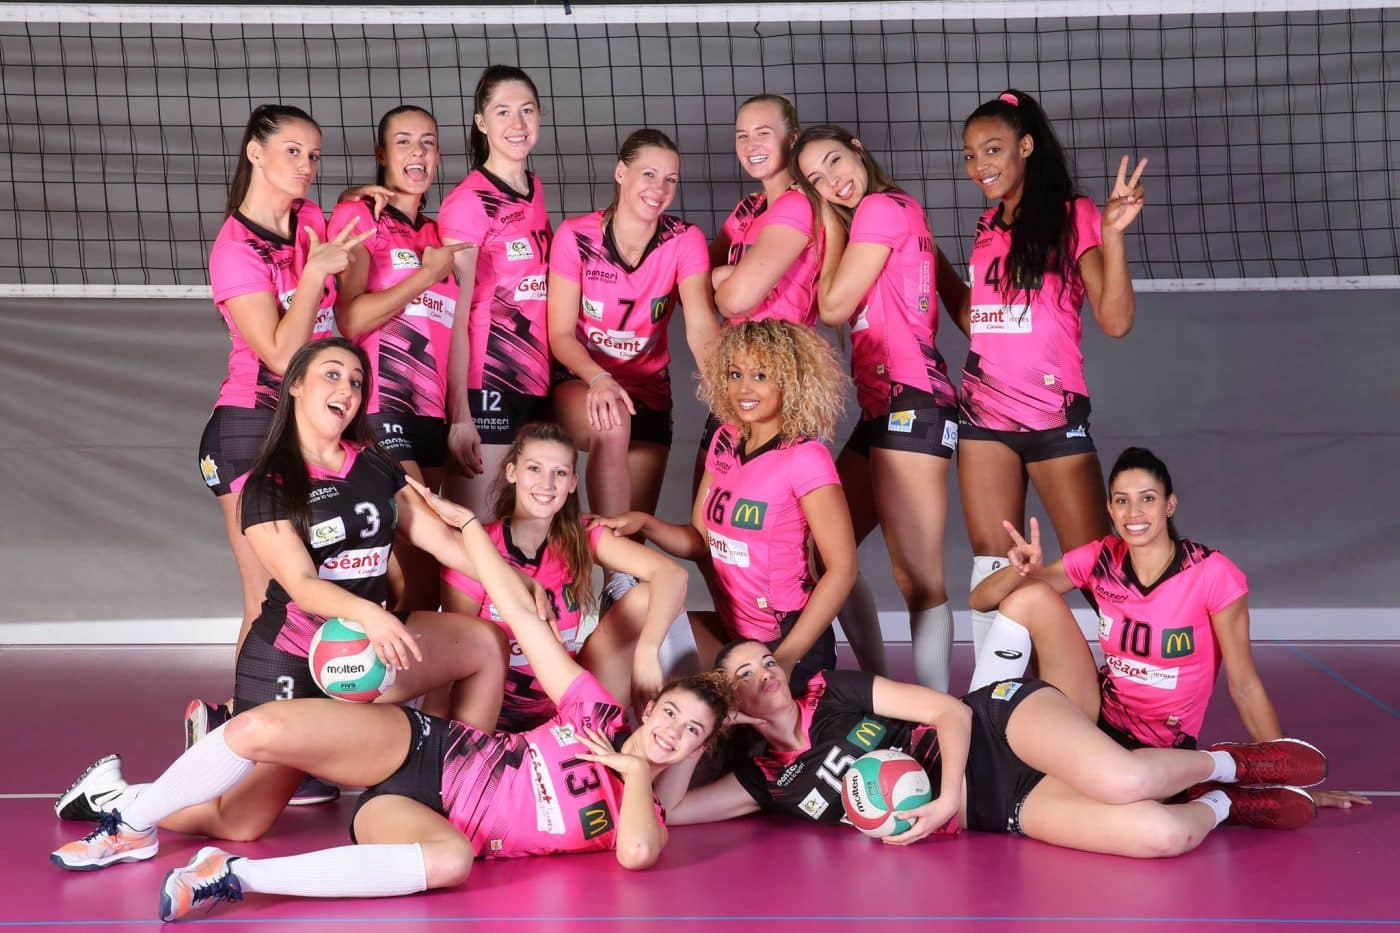 panzeri-volley-2019-volleypack-19